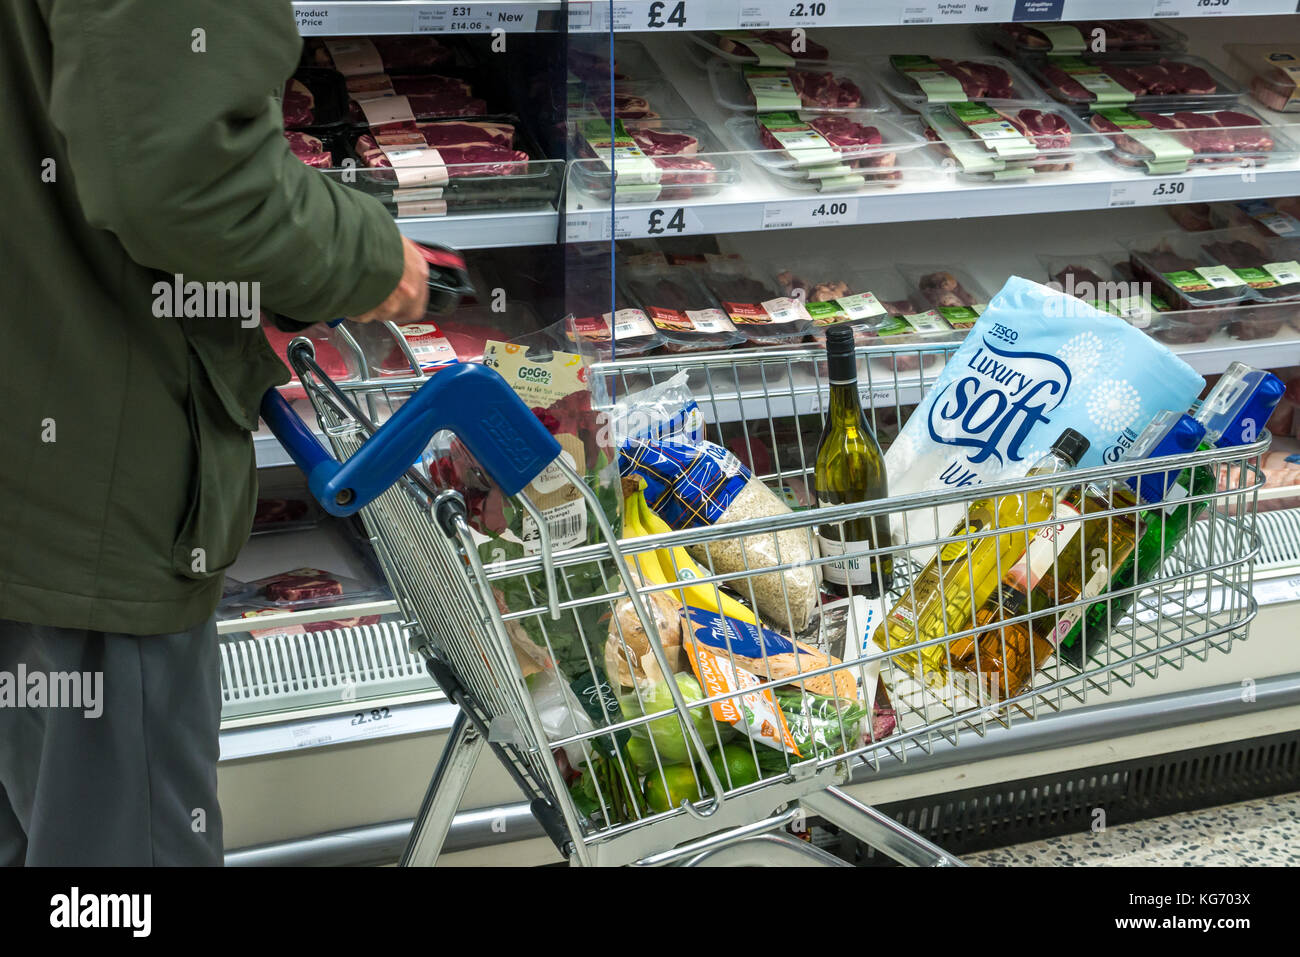 A man with a shopping trolley full of groceries at a Tesco supermarket, choosing meat, Scotland, UK - Stock Image